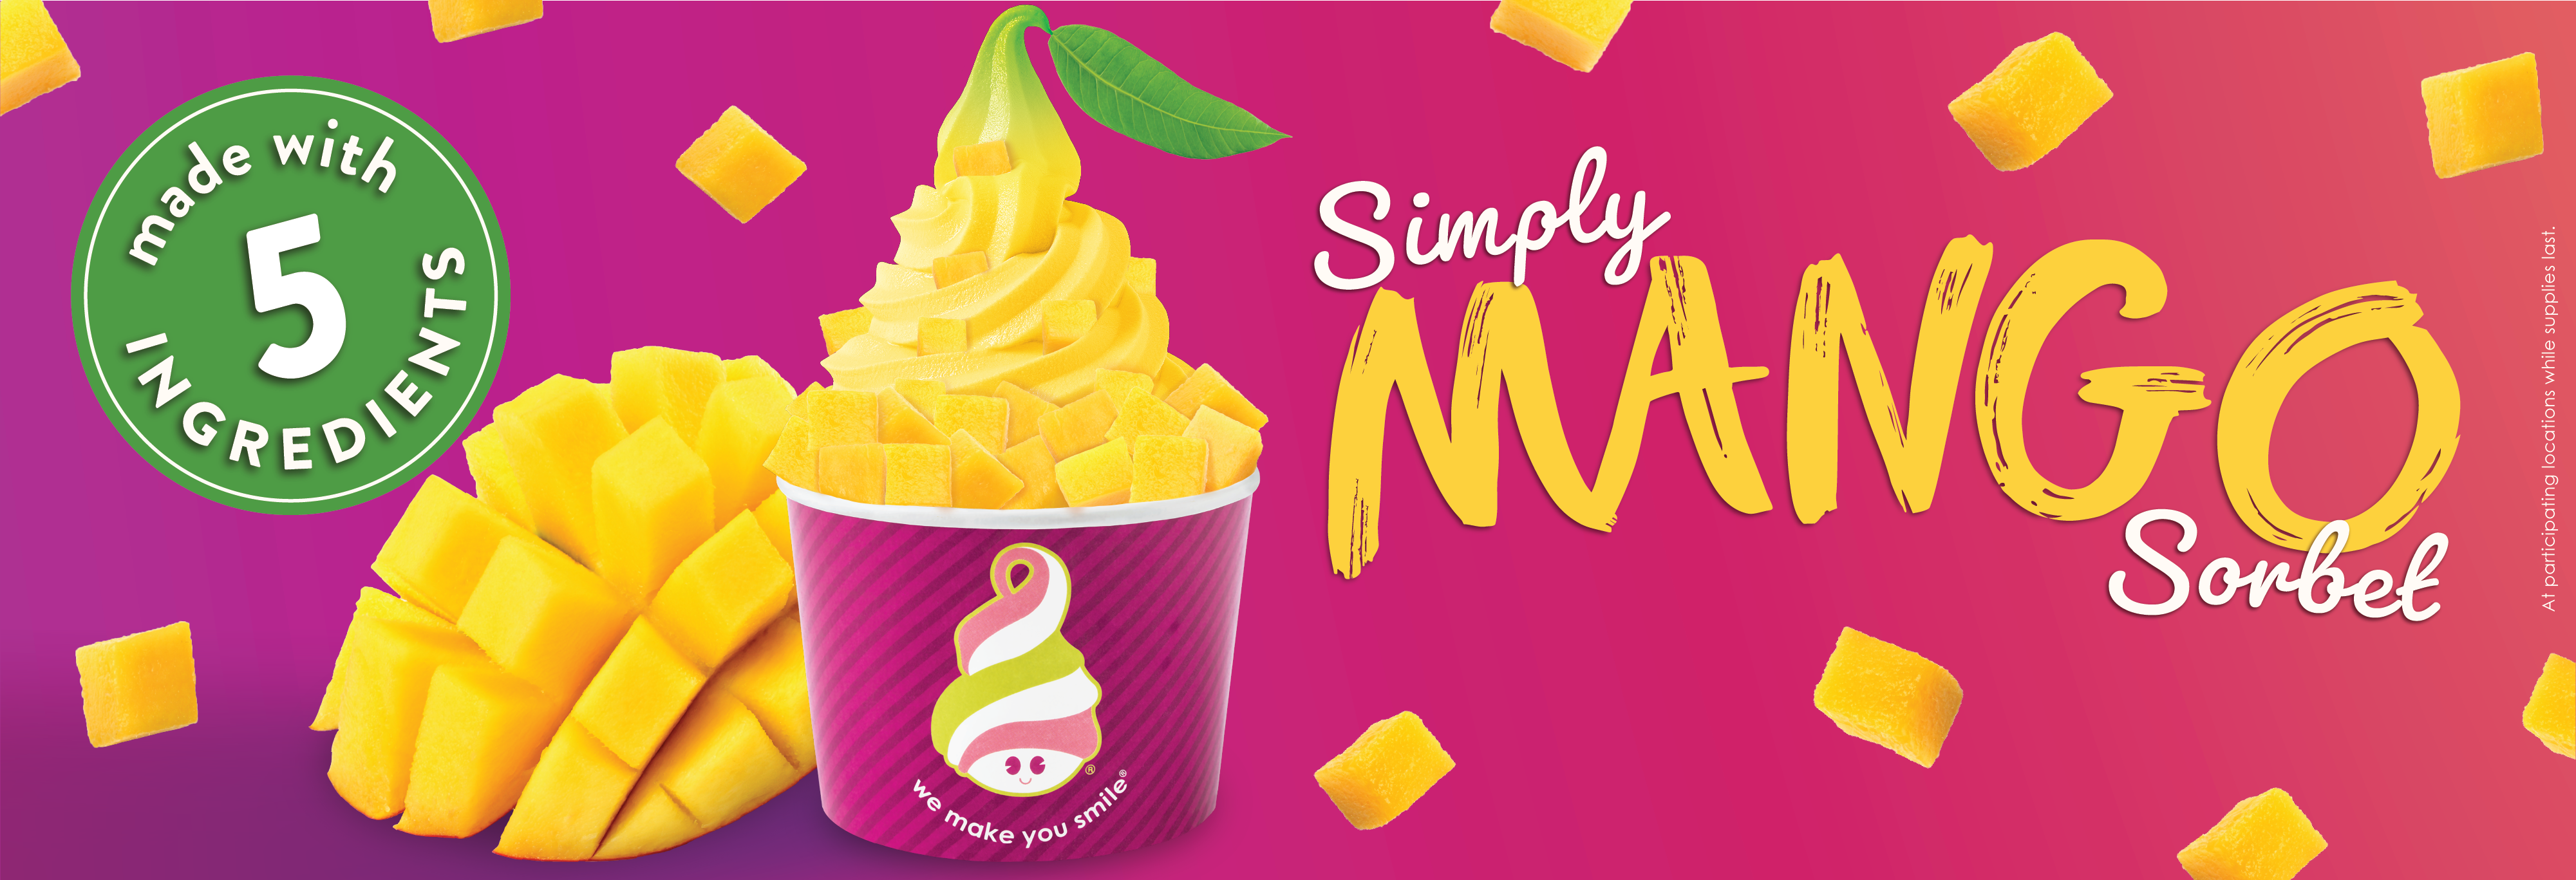 A cup of Simply Mango Sorbet. Introducing our new Simply Mango Sorbet frozen yogurt, made with only five ingredients. We packed the most mango flavor into a froyo with the least amount of ingredients - try it this month. Because ingredients matter.